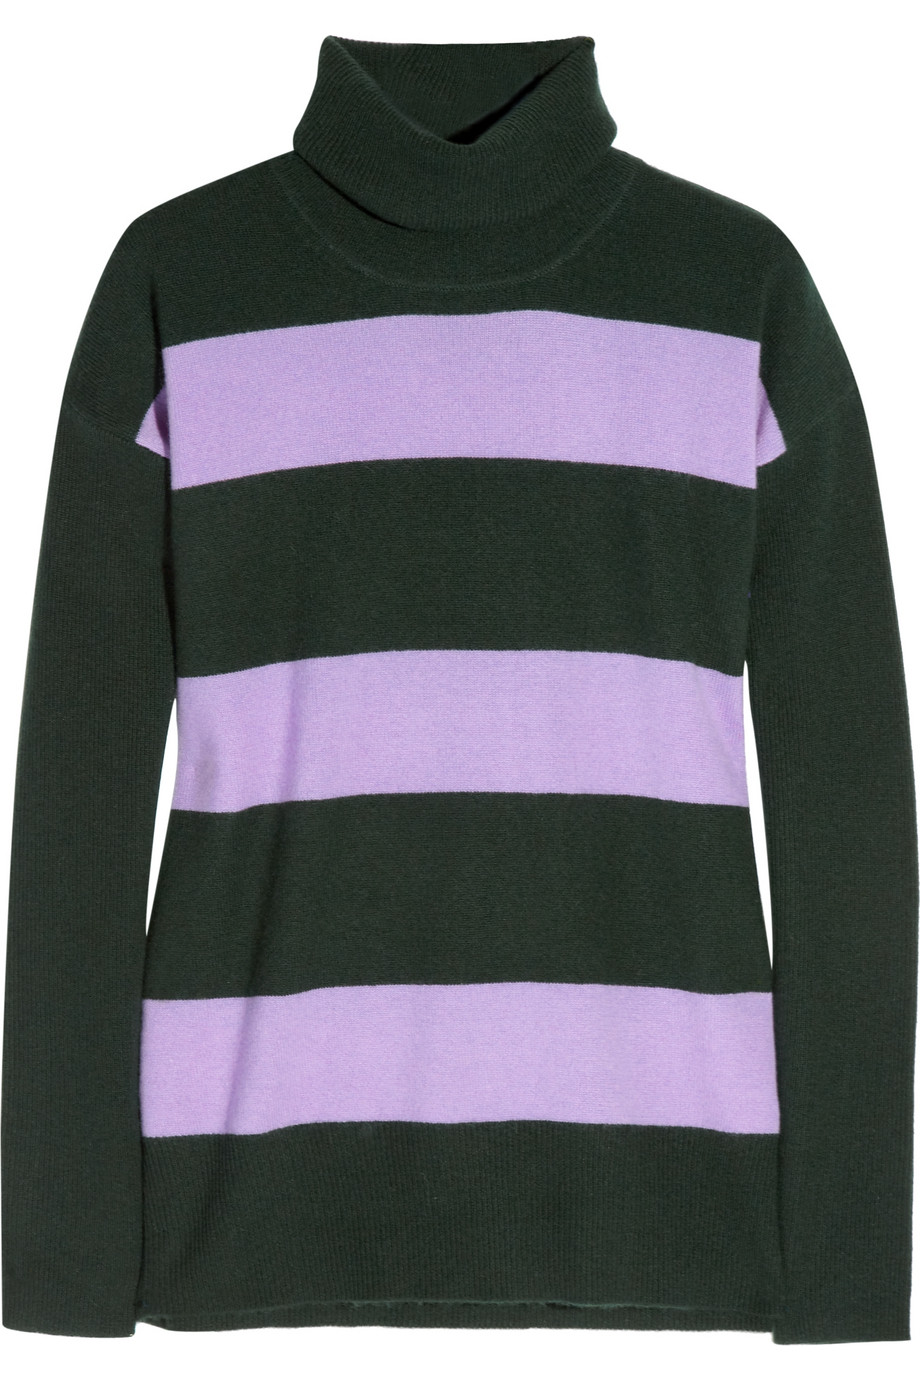 J.crew Striped Cashmere Turtleneck Sweater in Black | Lyst